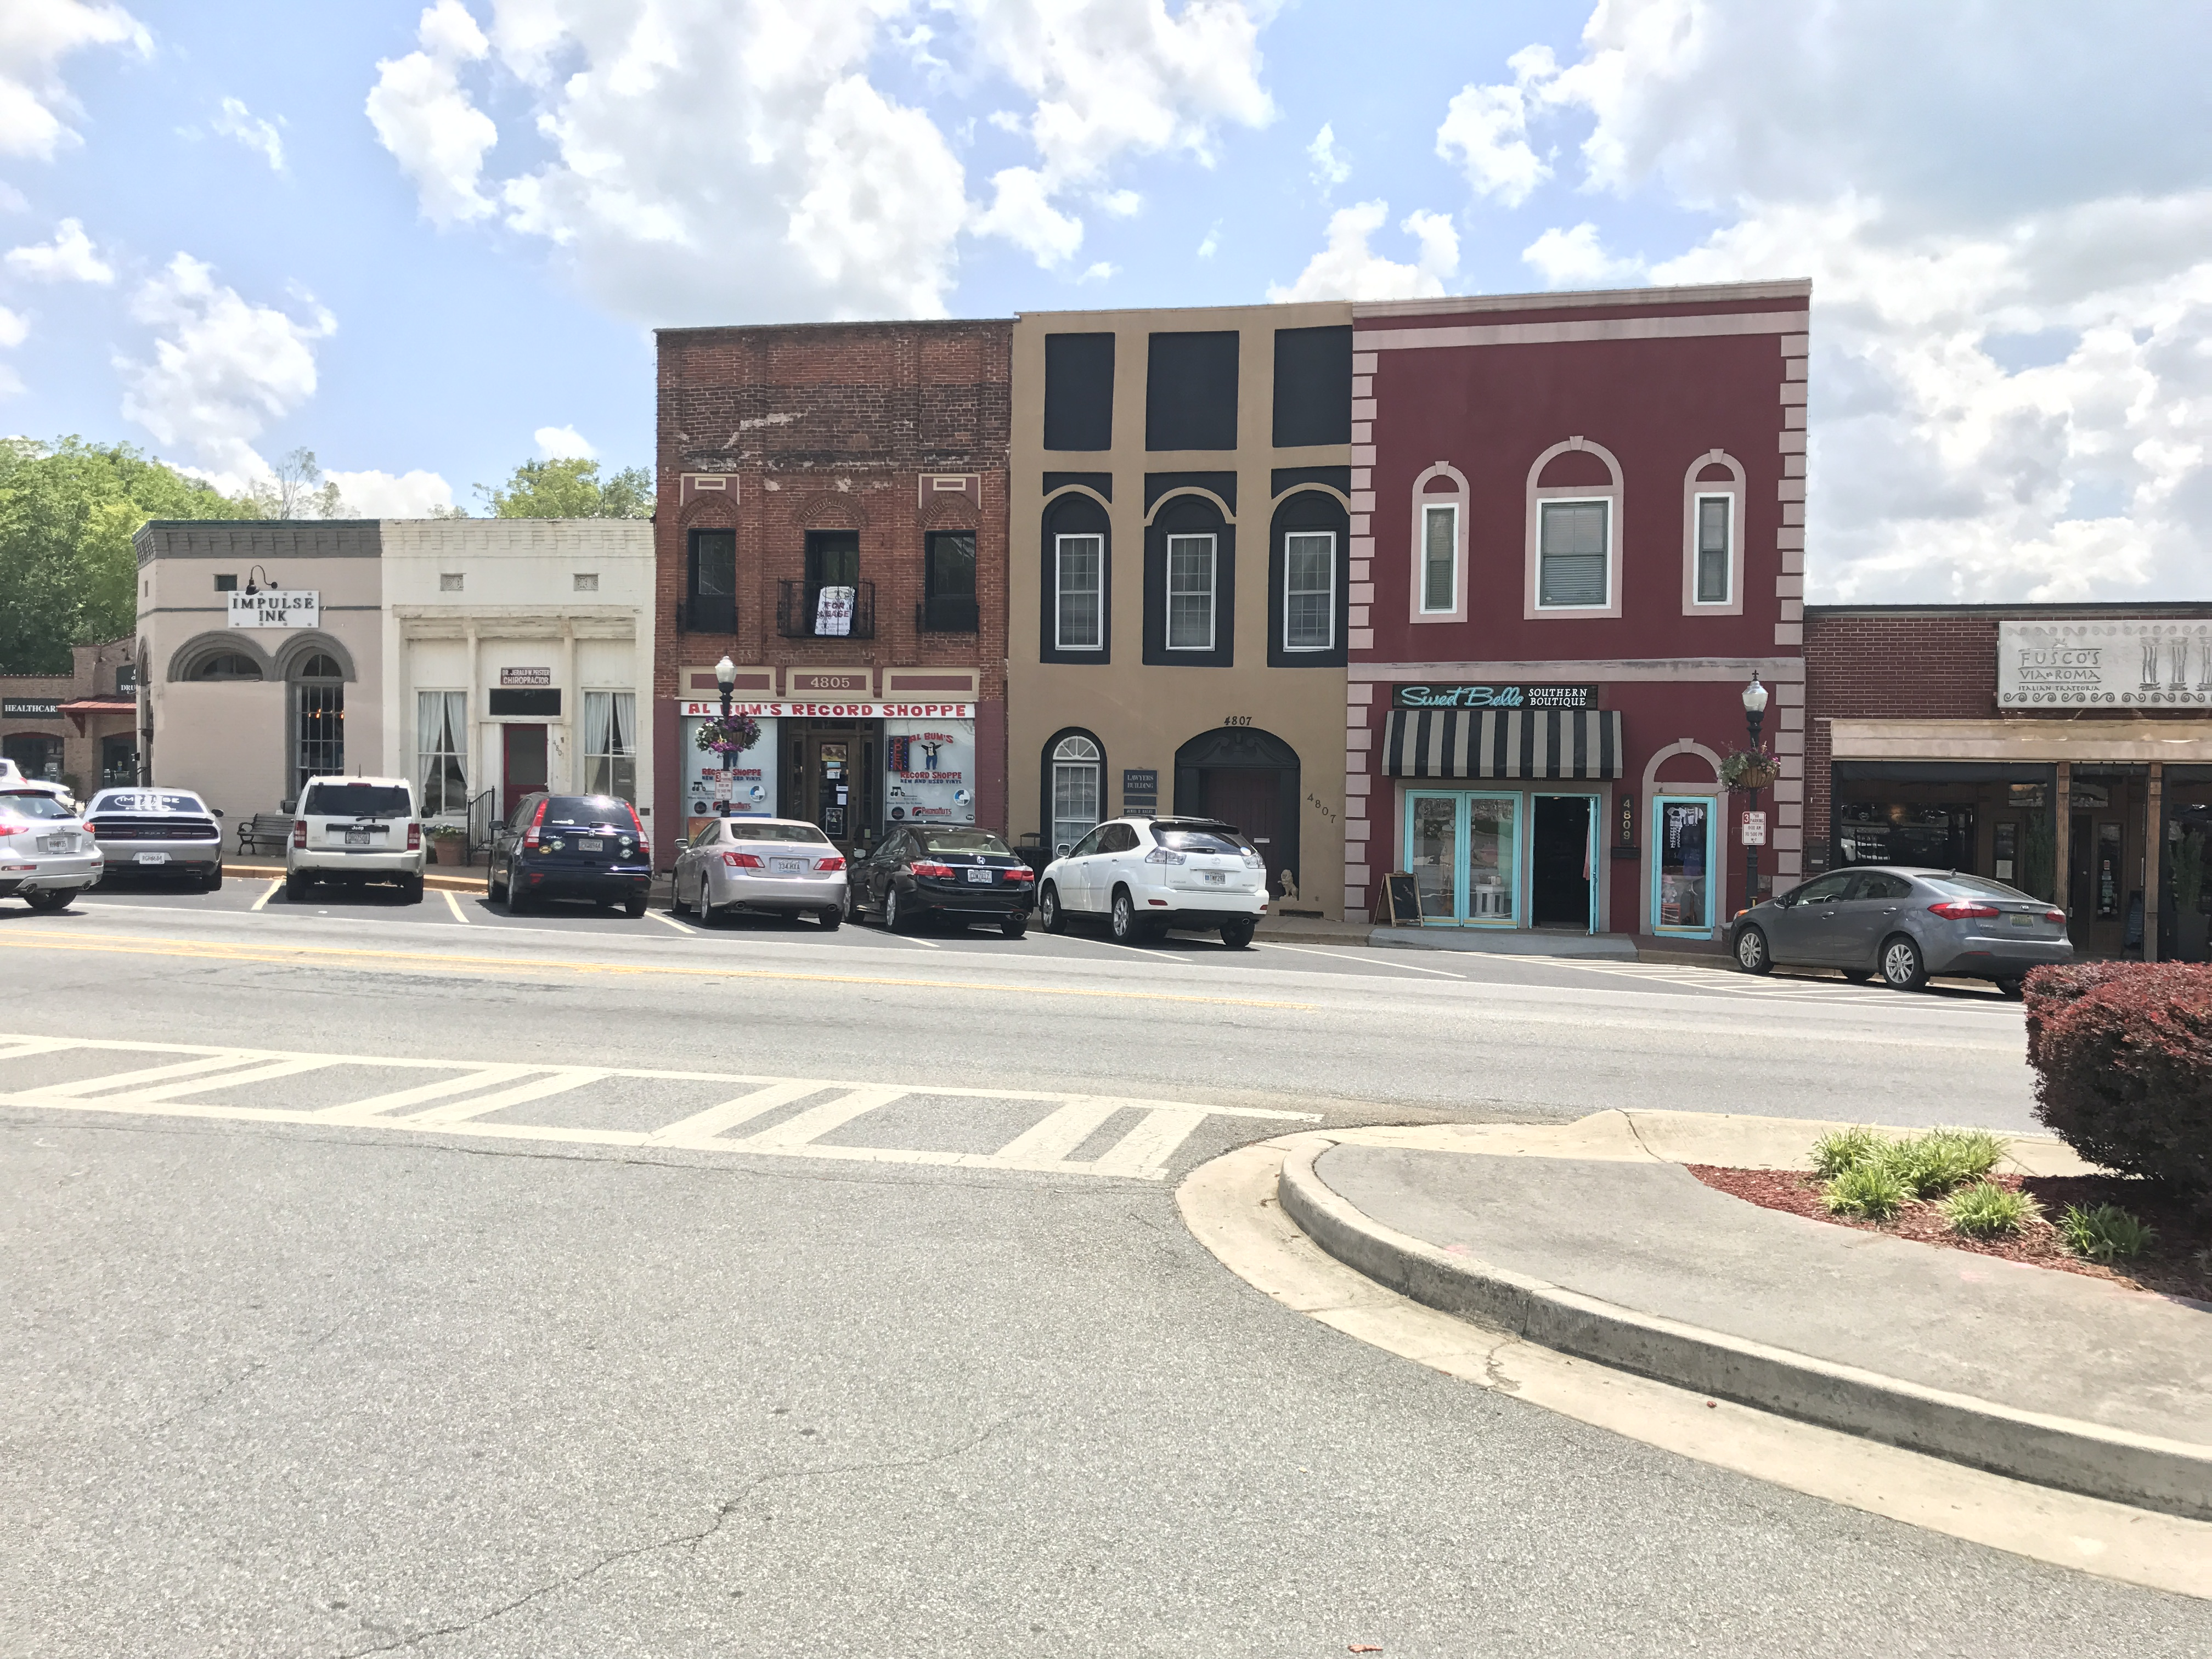 A present day photo of historic buildings along N. Main Street.